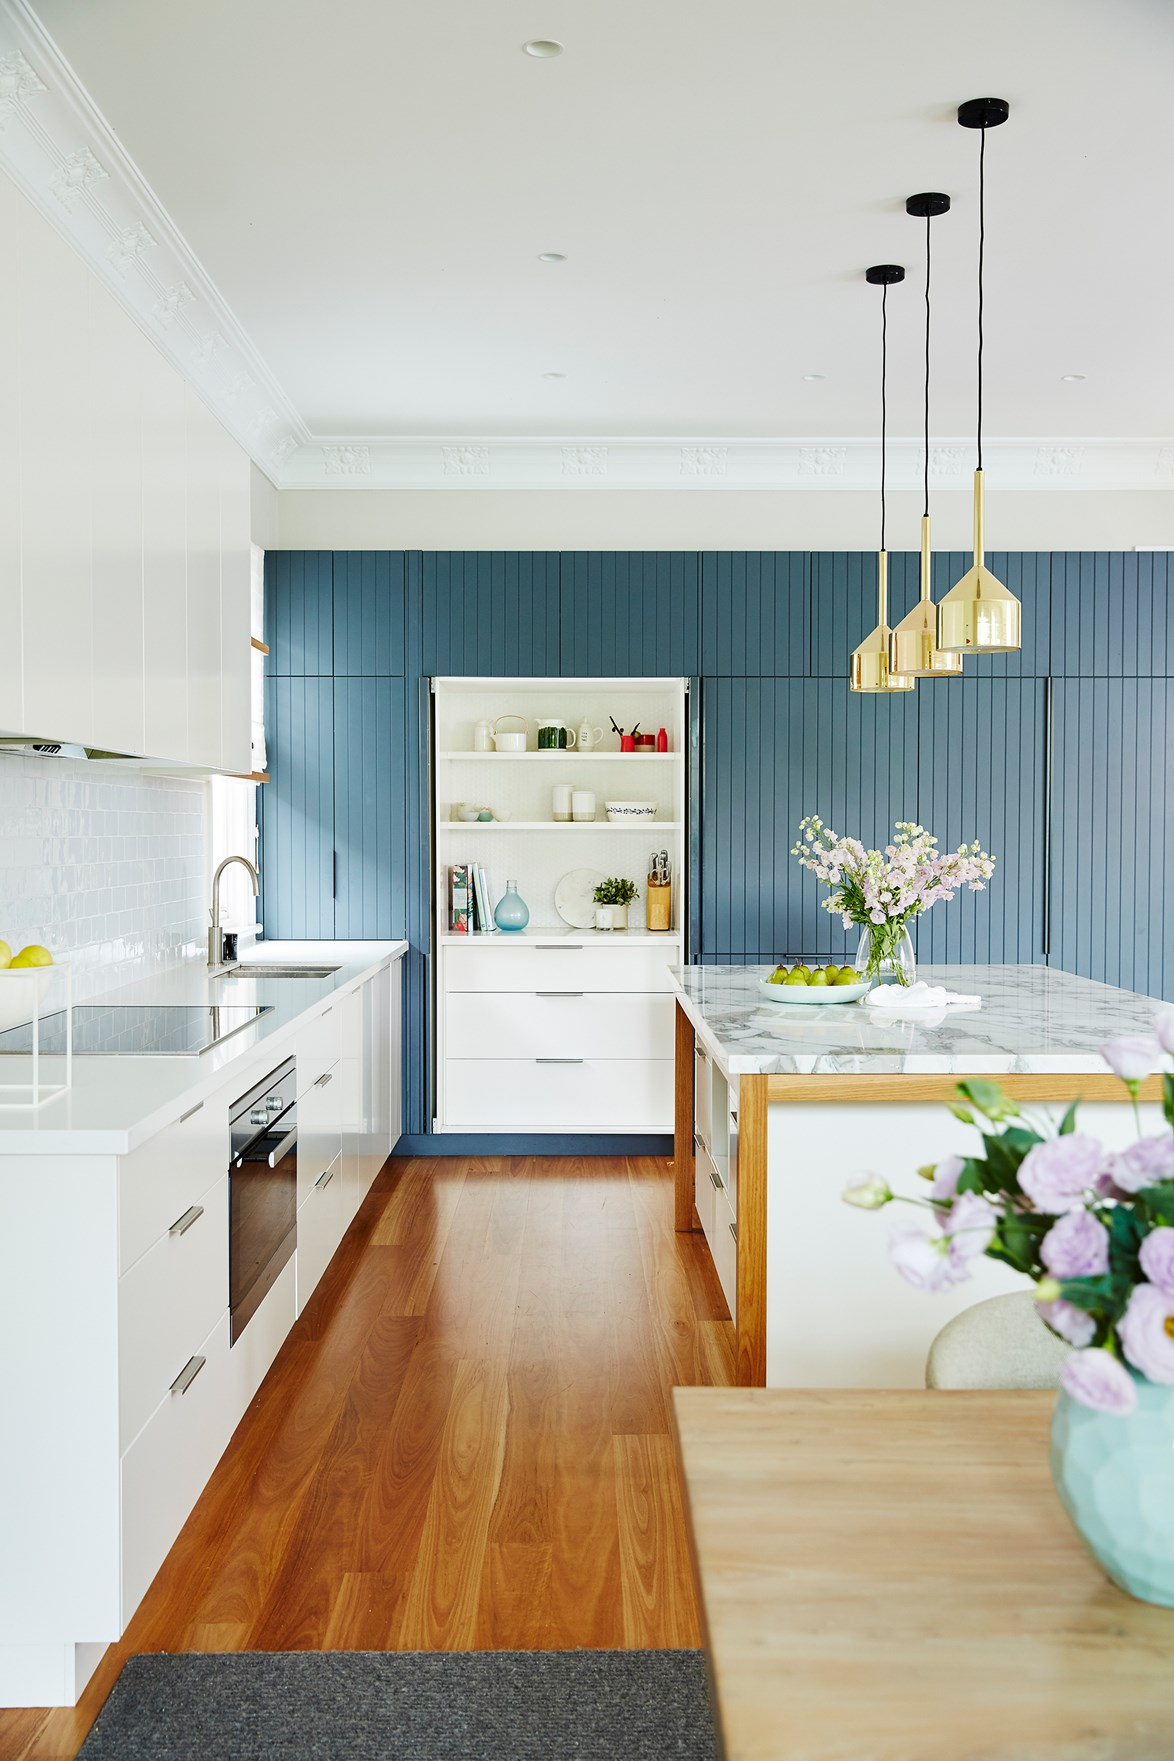 "Using marble sparingly in a kitchen, like the island bench in this [renovated Federation home](https://www.homestolove.com.au/federation-home-brought-to-life-with-colour-4800|target=""_blank"") is not only cost effective, but practical. [Cleaning and protecting marble](https://www.homestolove.com.au/how-to-clean-marble-benchtops-3745